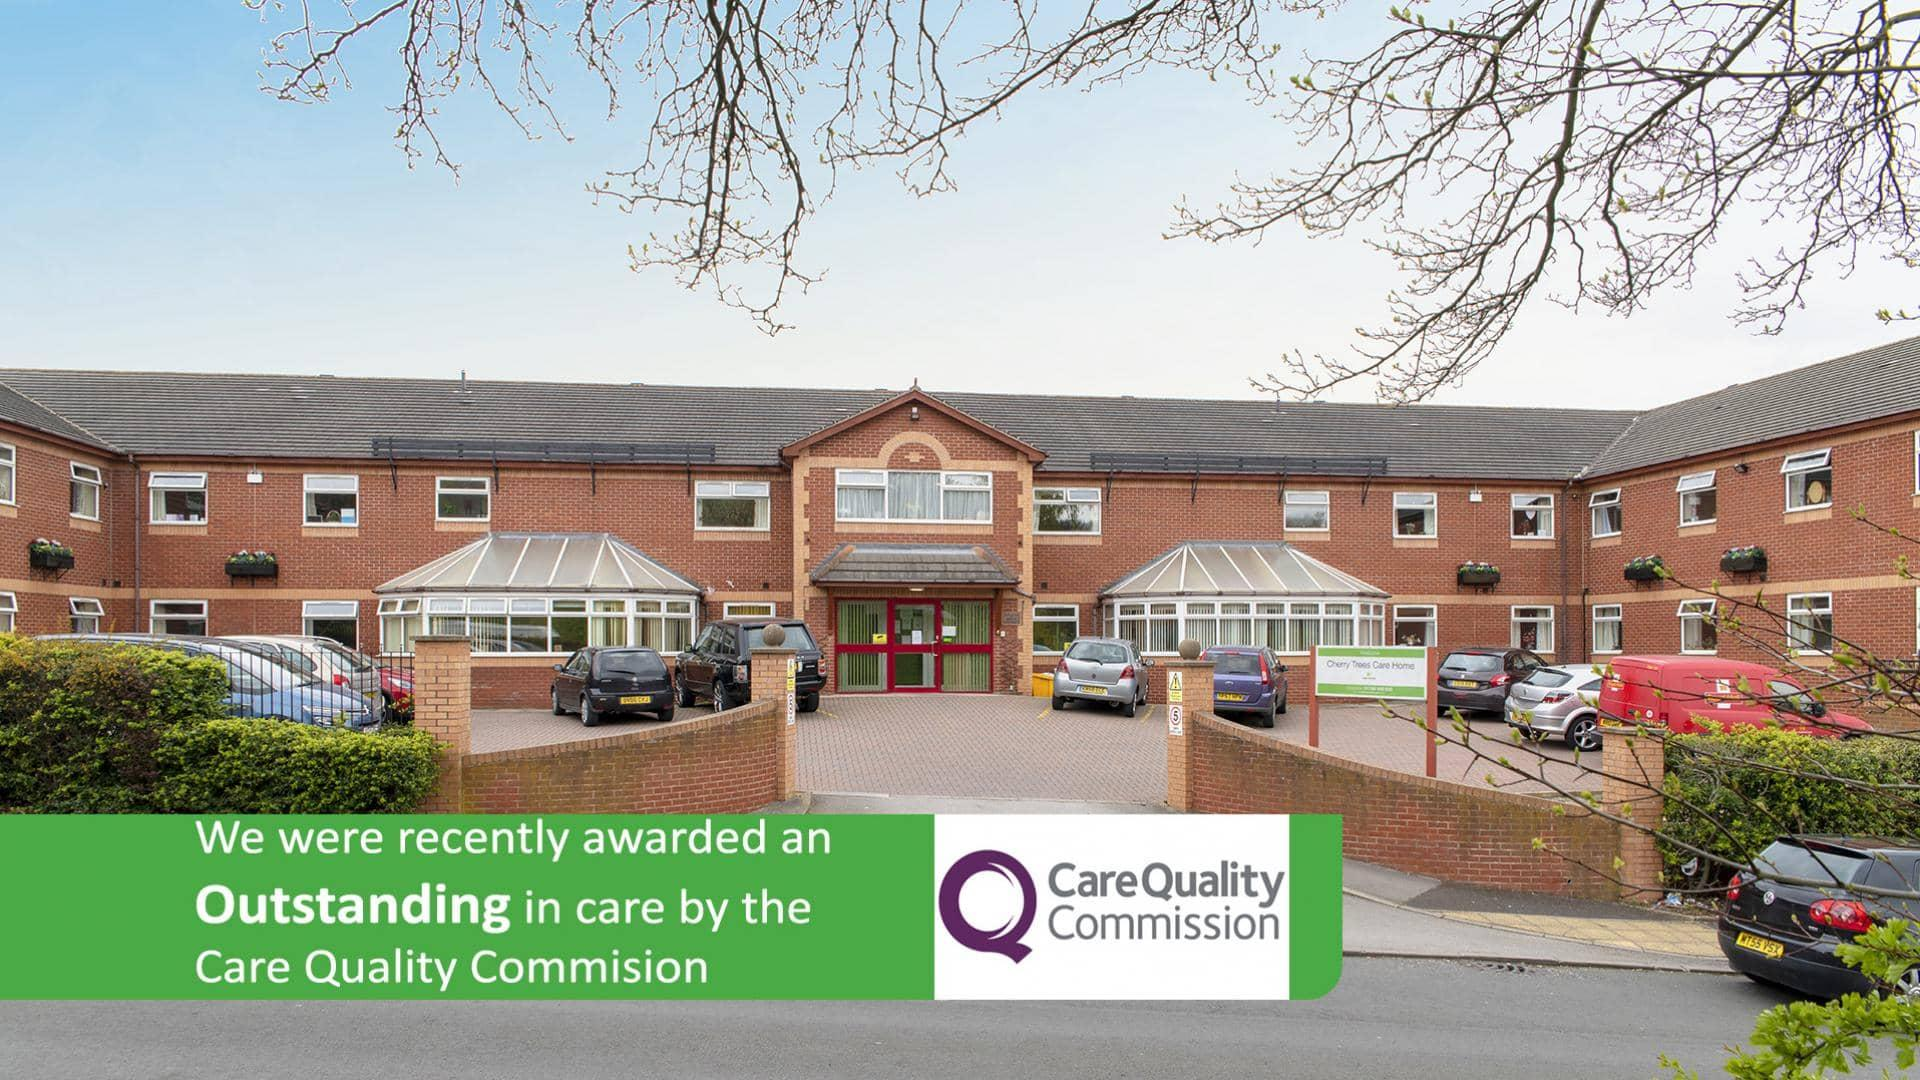 Cherry Trees Care Home - Rotherham Care Home - Outstanding CQC Care.